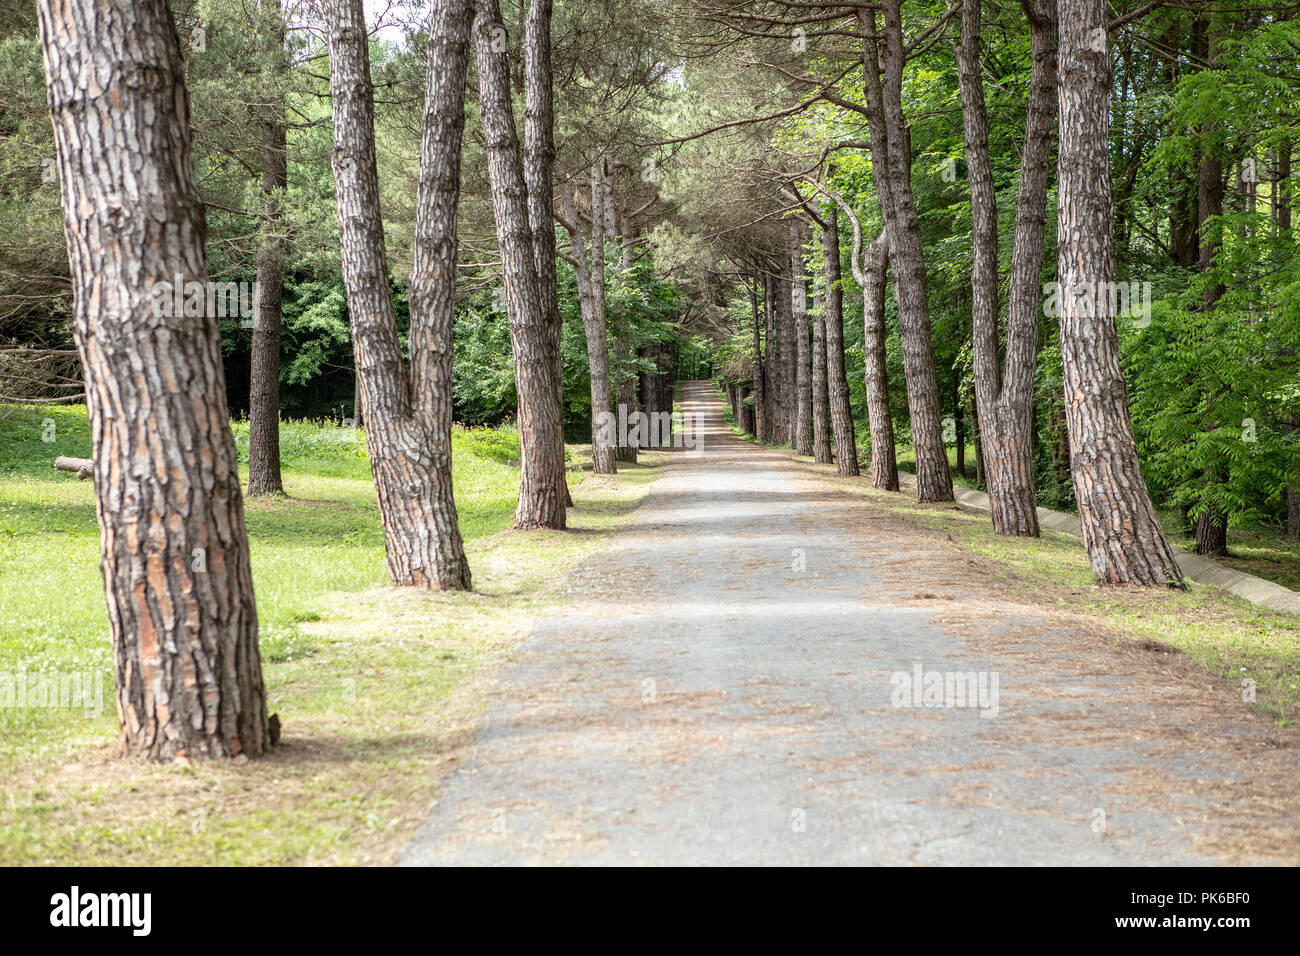 Rural Road Lined By Old Trees Nature Background Stock Photo Alamy